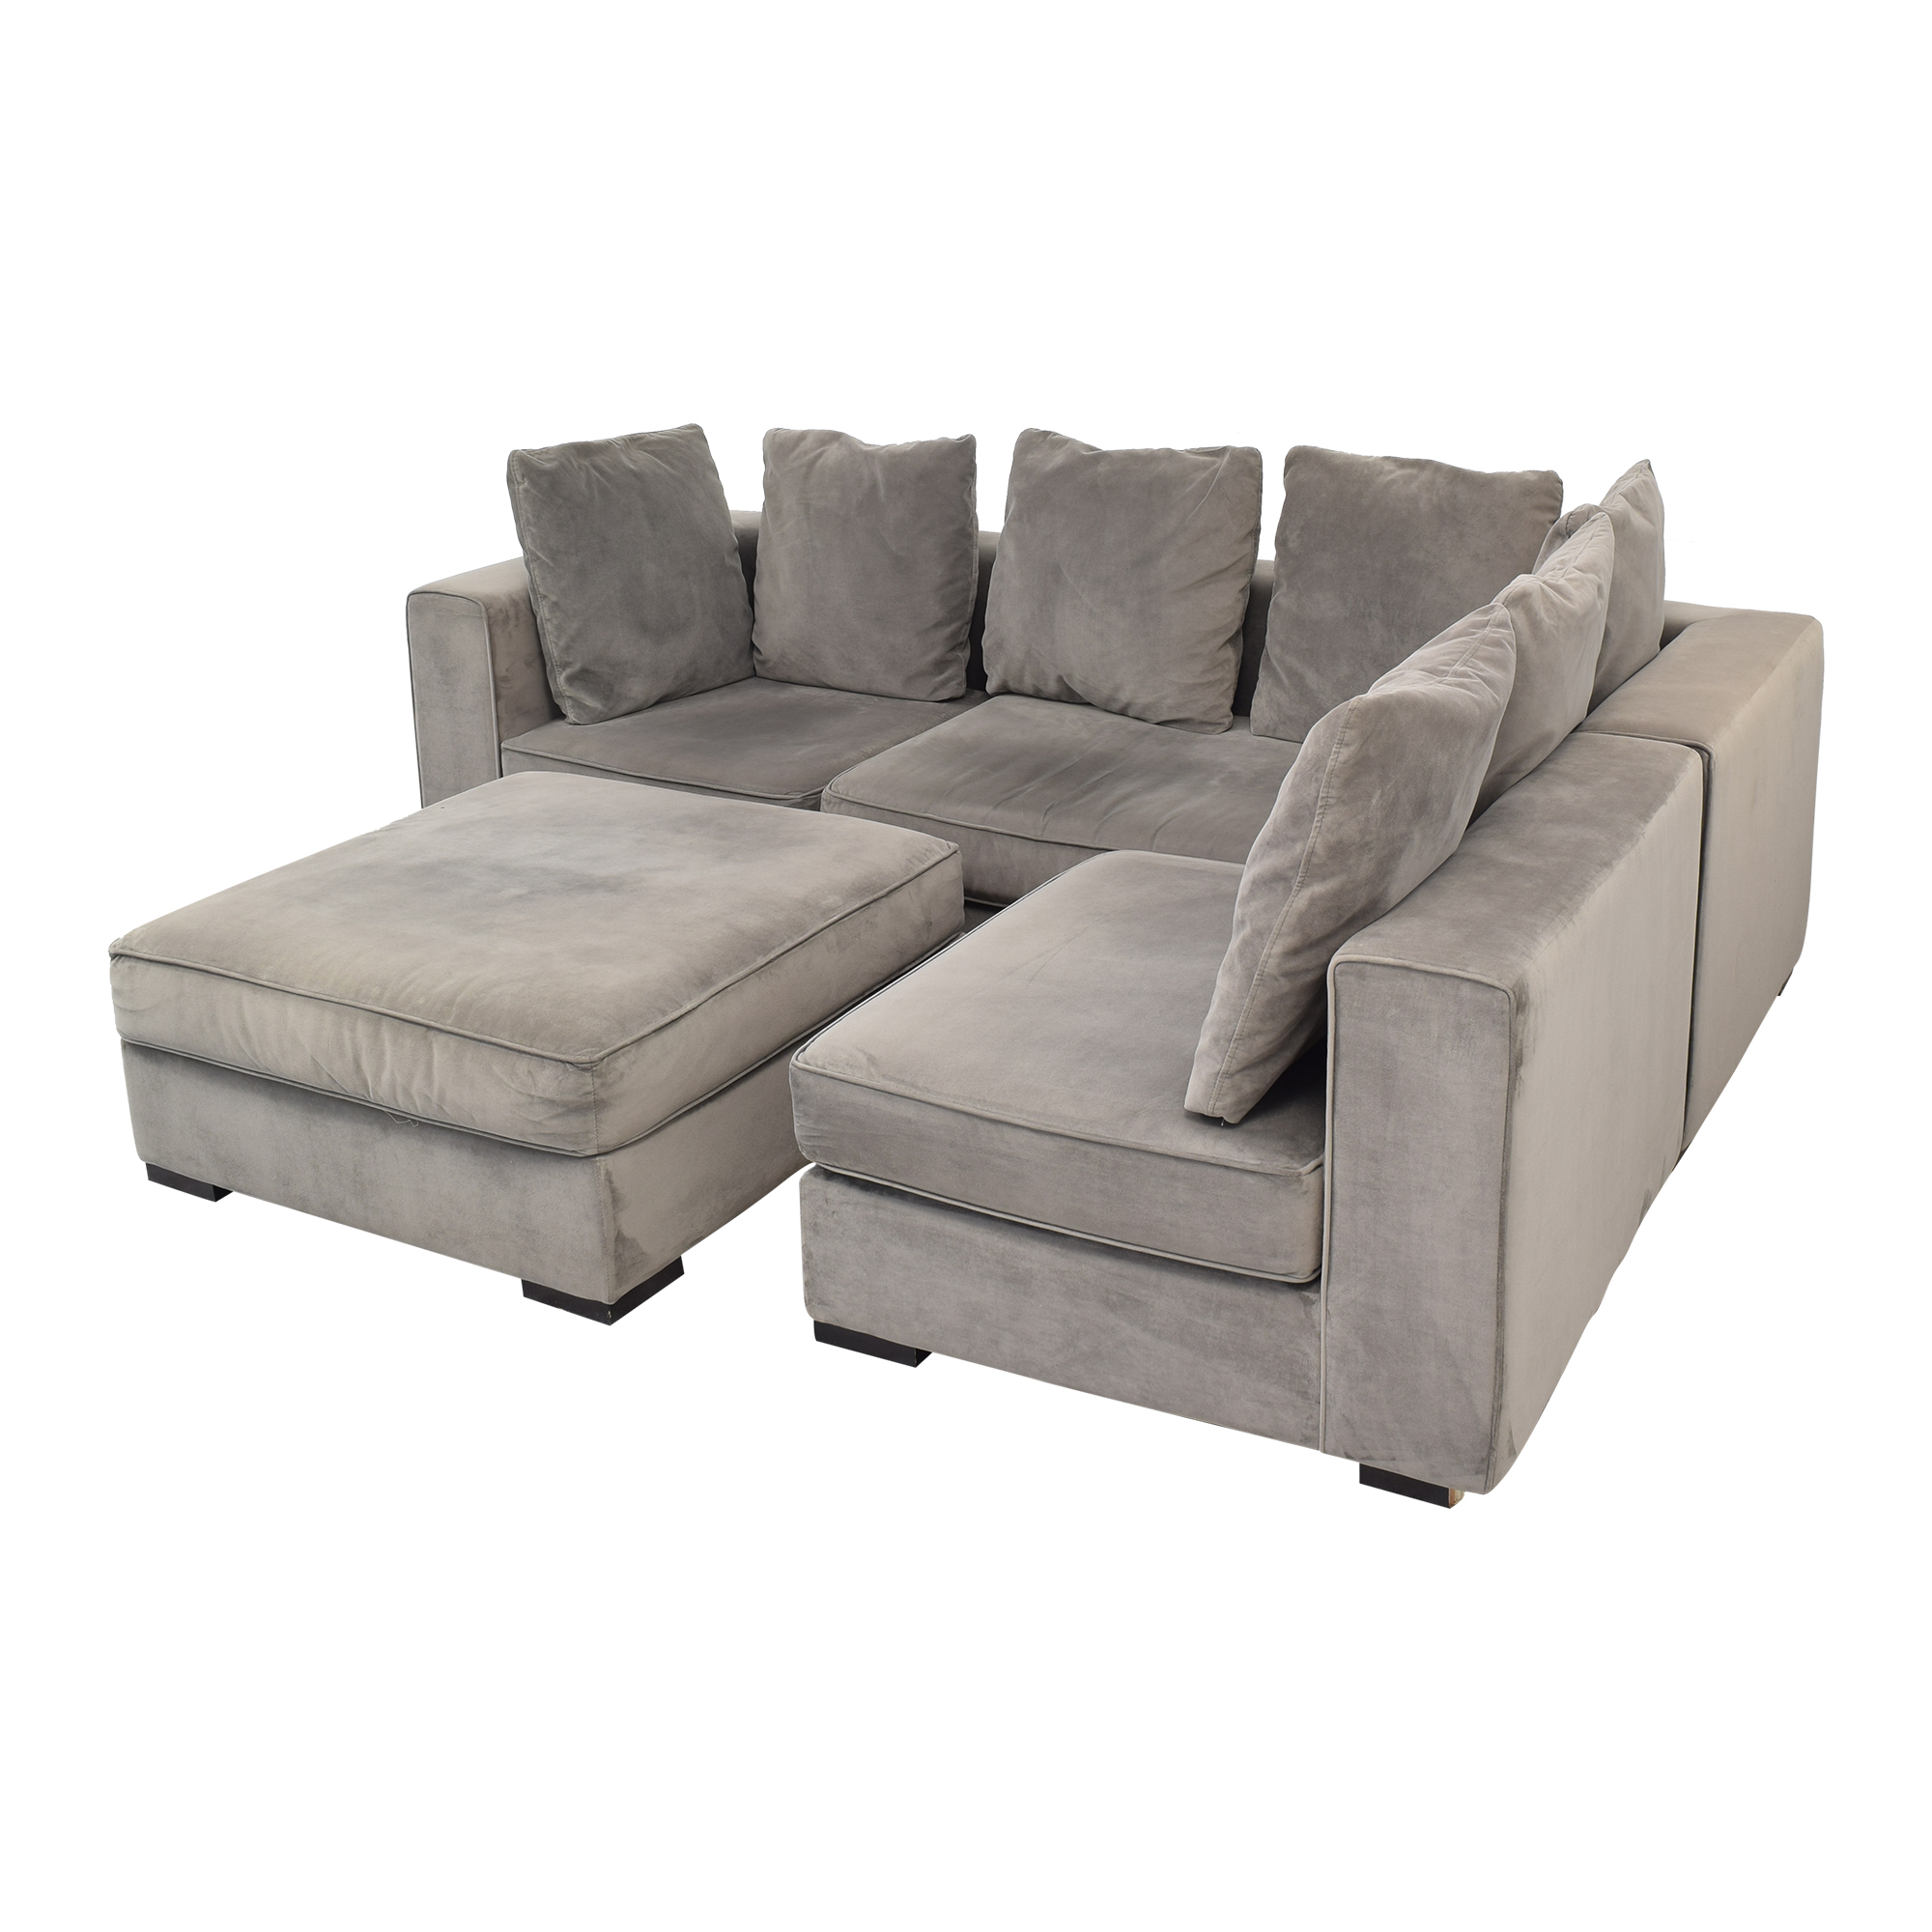 West Elm West Elm 3-Piece Sectional with Ottoman Sectionals